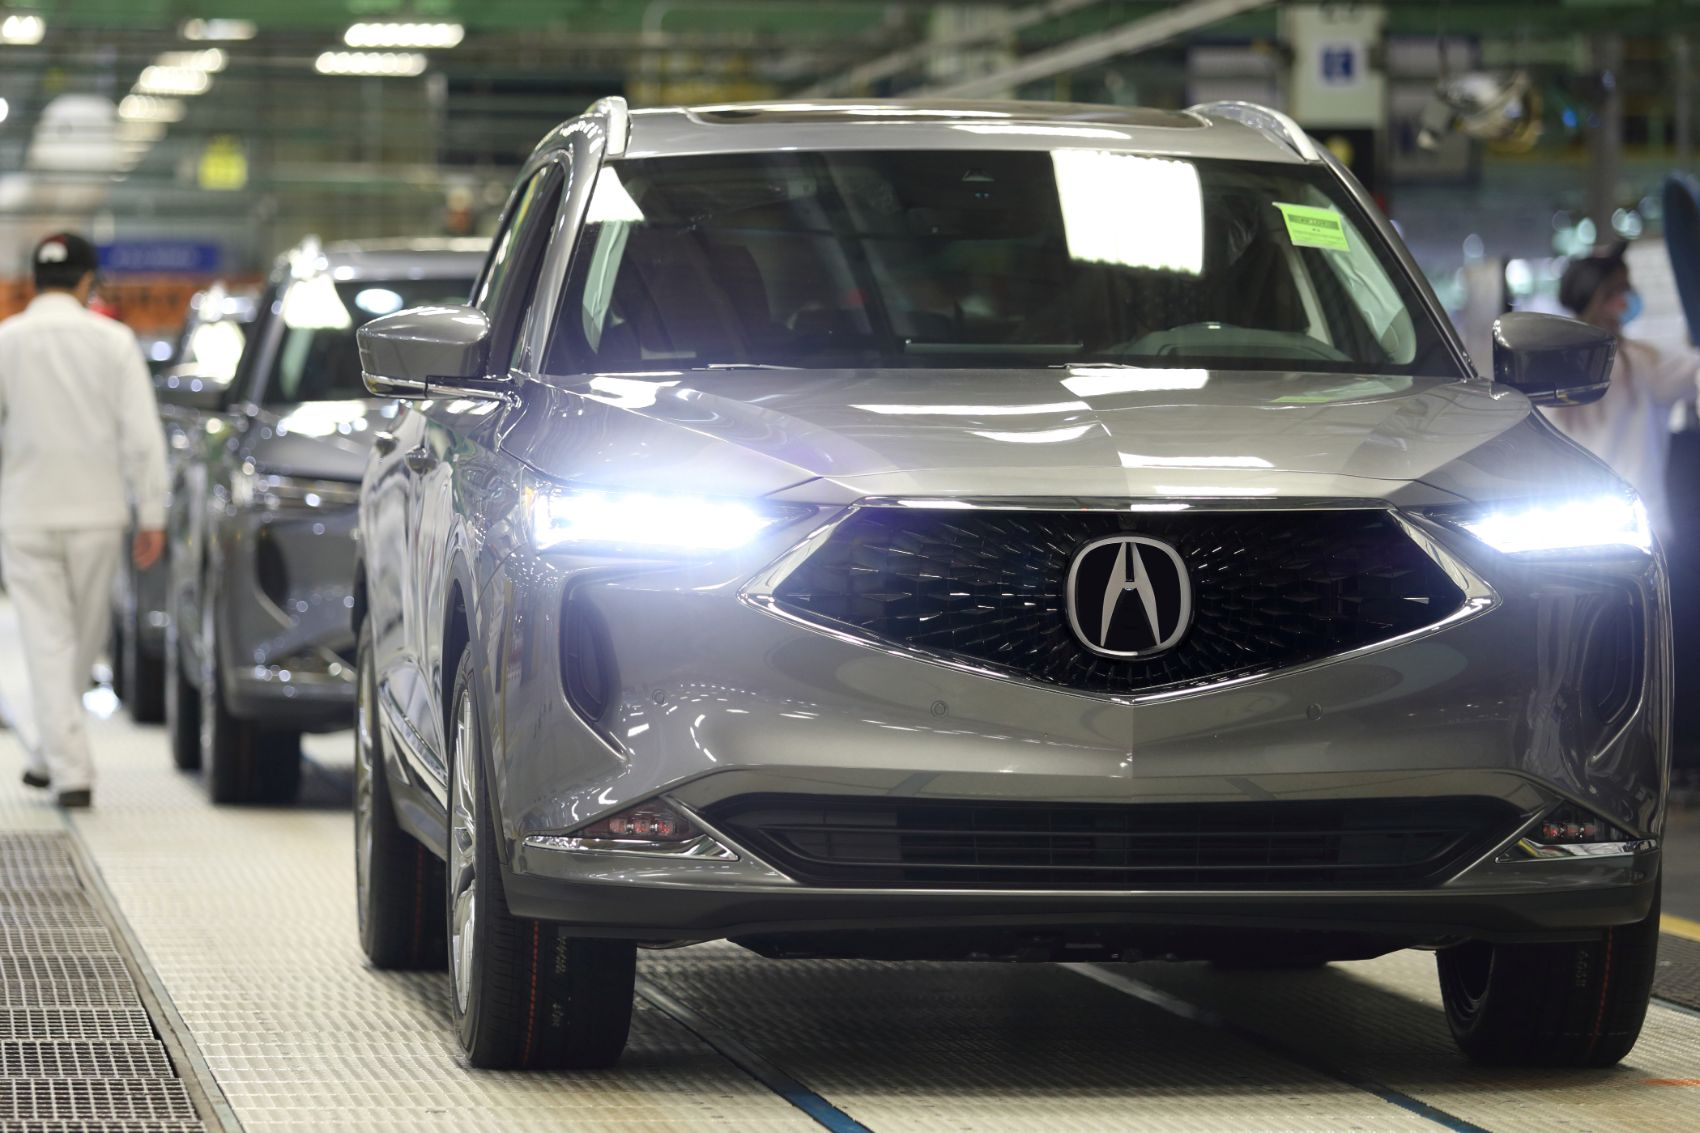 2022 Acura MDX Production Underway In Ohio & Will Arrive In February